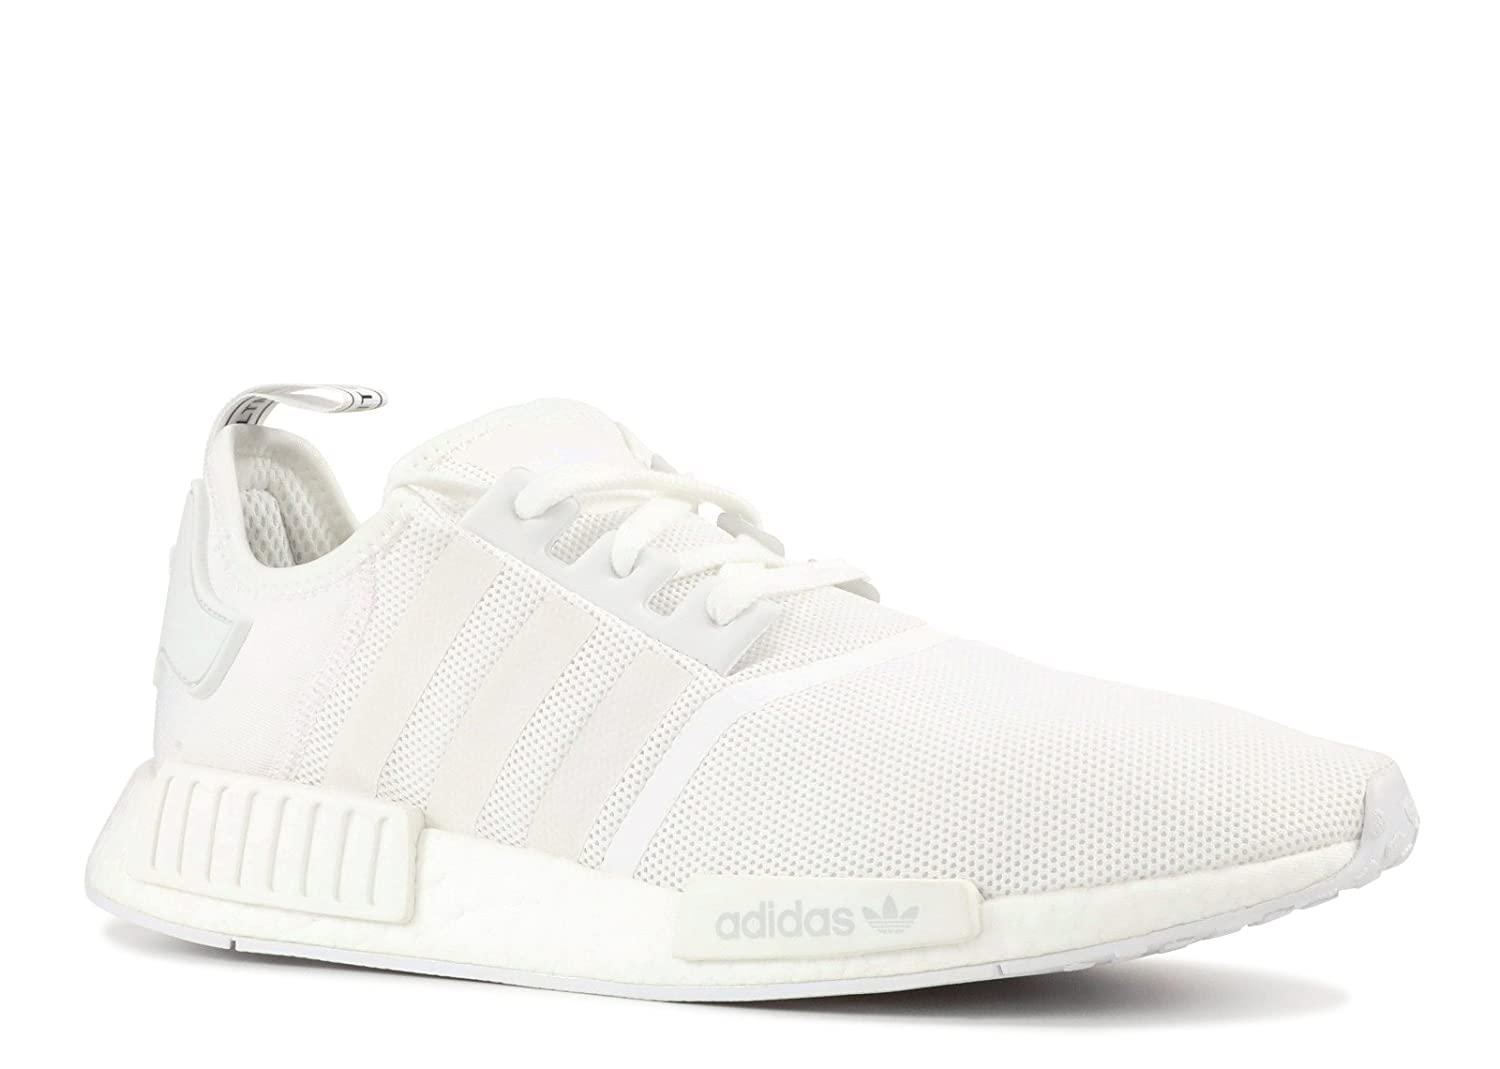 best website 02d53 51ad1 adidas NMD R1 - CQ2411 -: Amazon.co.uk: Shoes & Bags